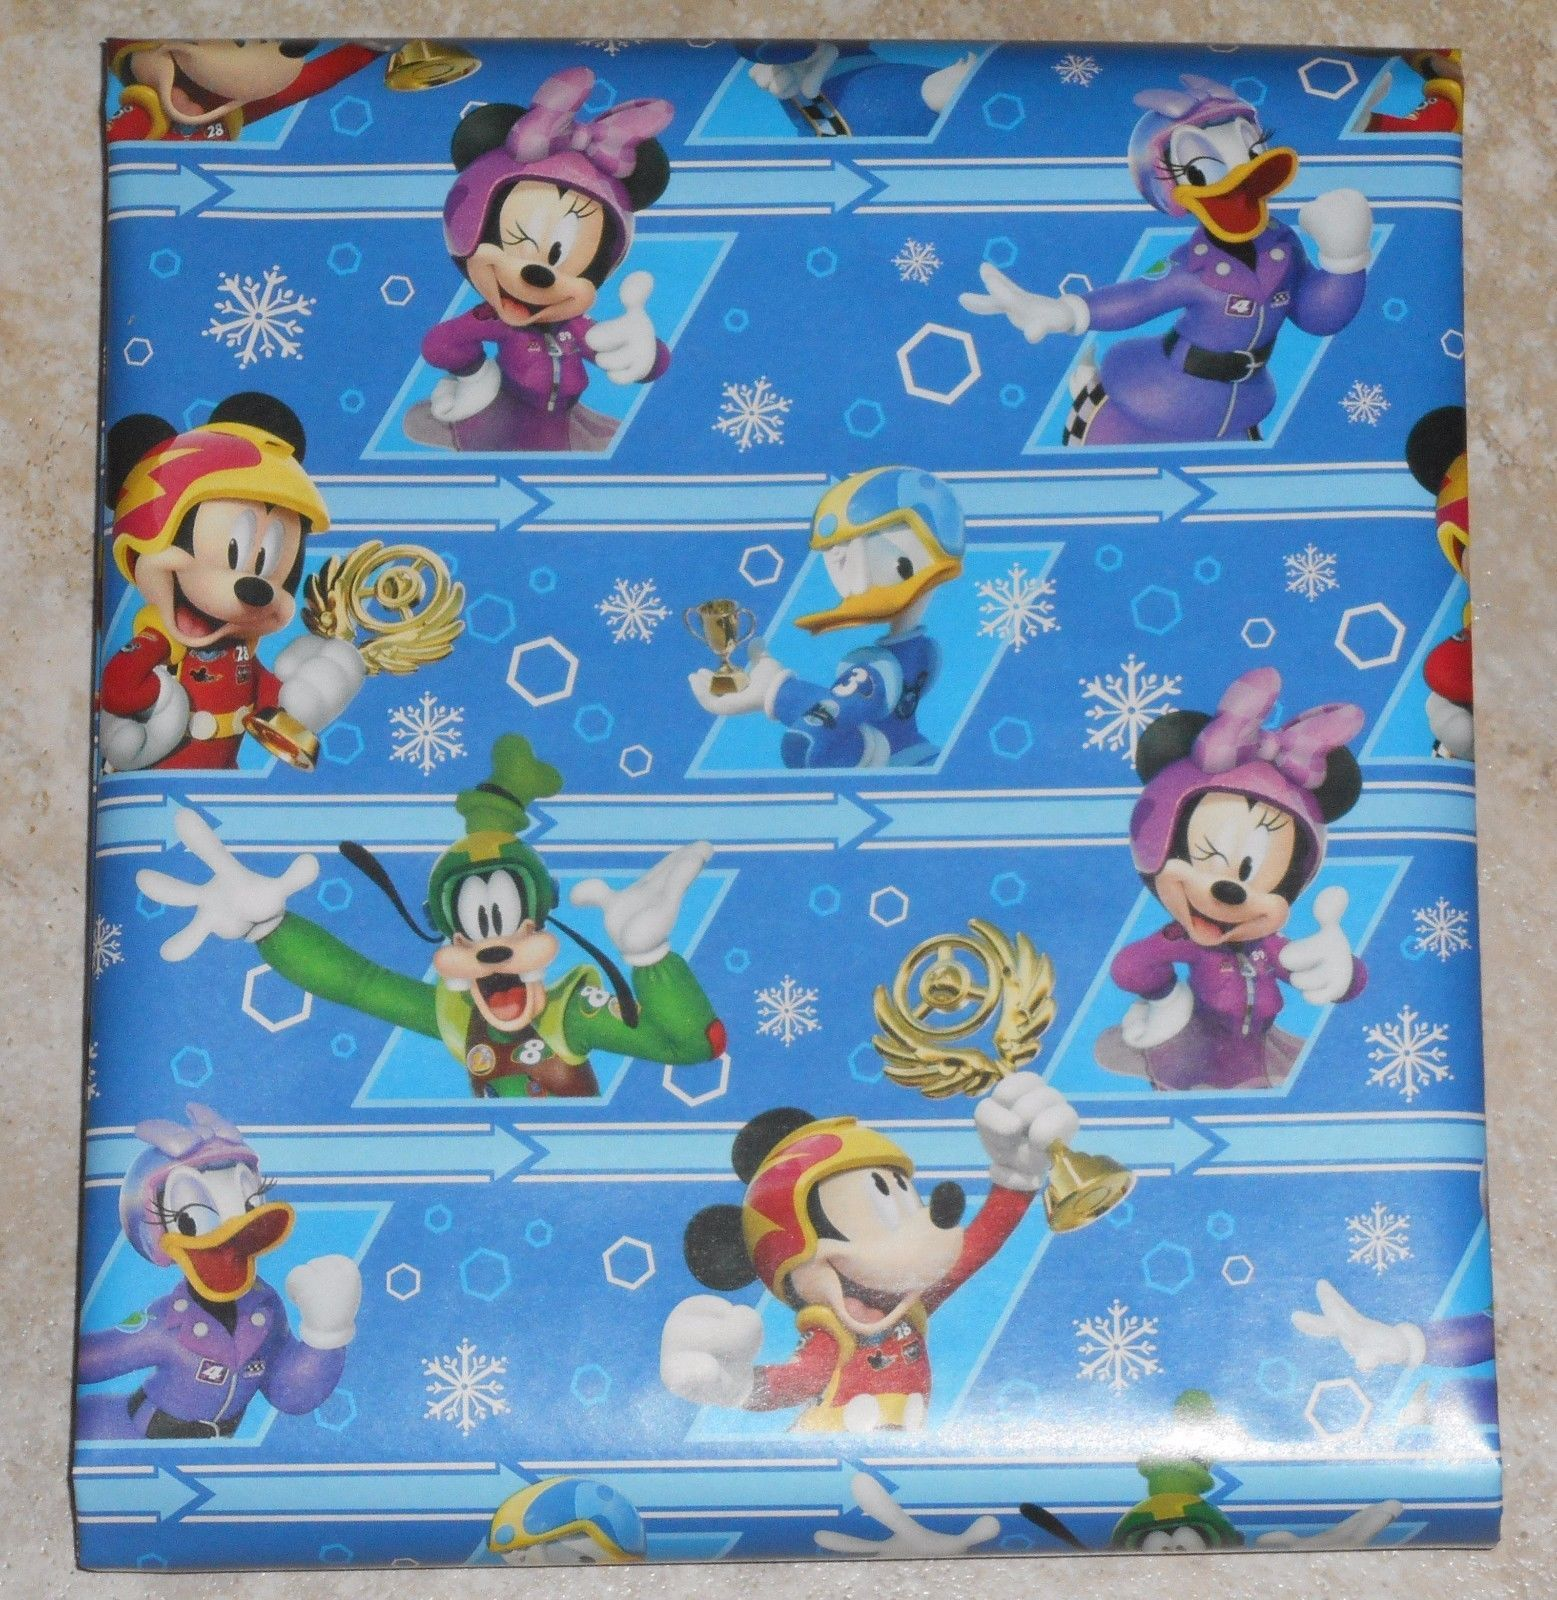 s l1600 s l1600 disney am greetings mickey mouse goofy christmas wrapping paper